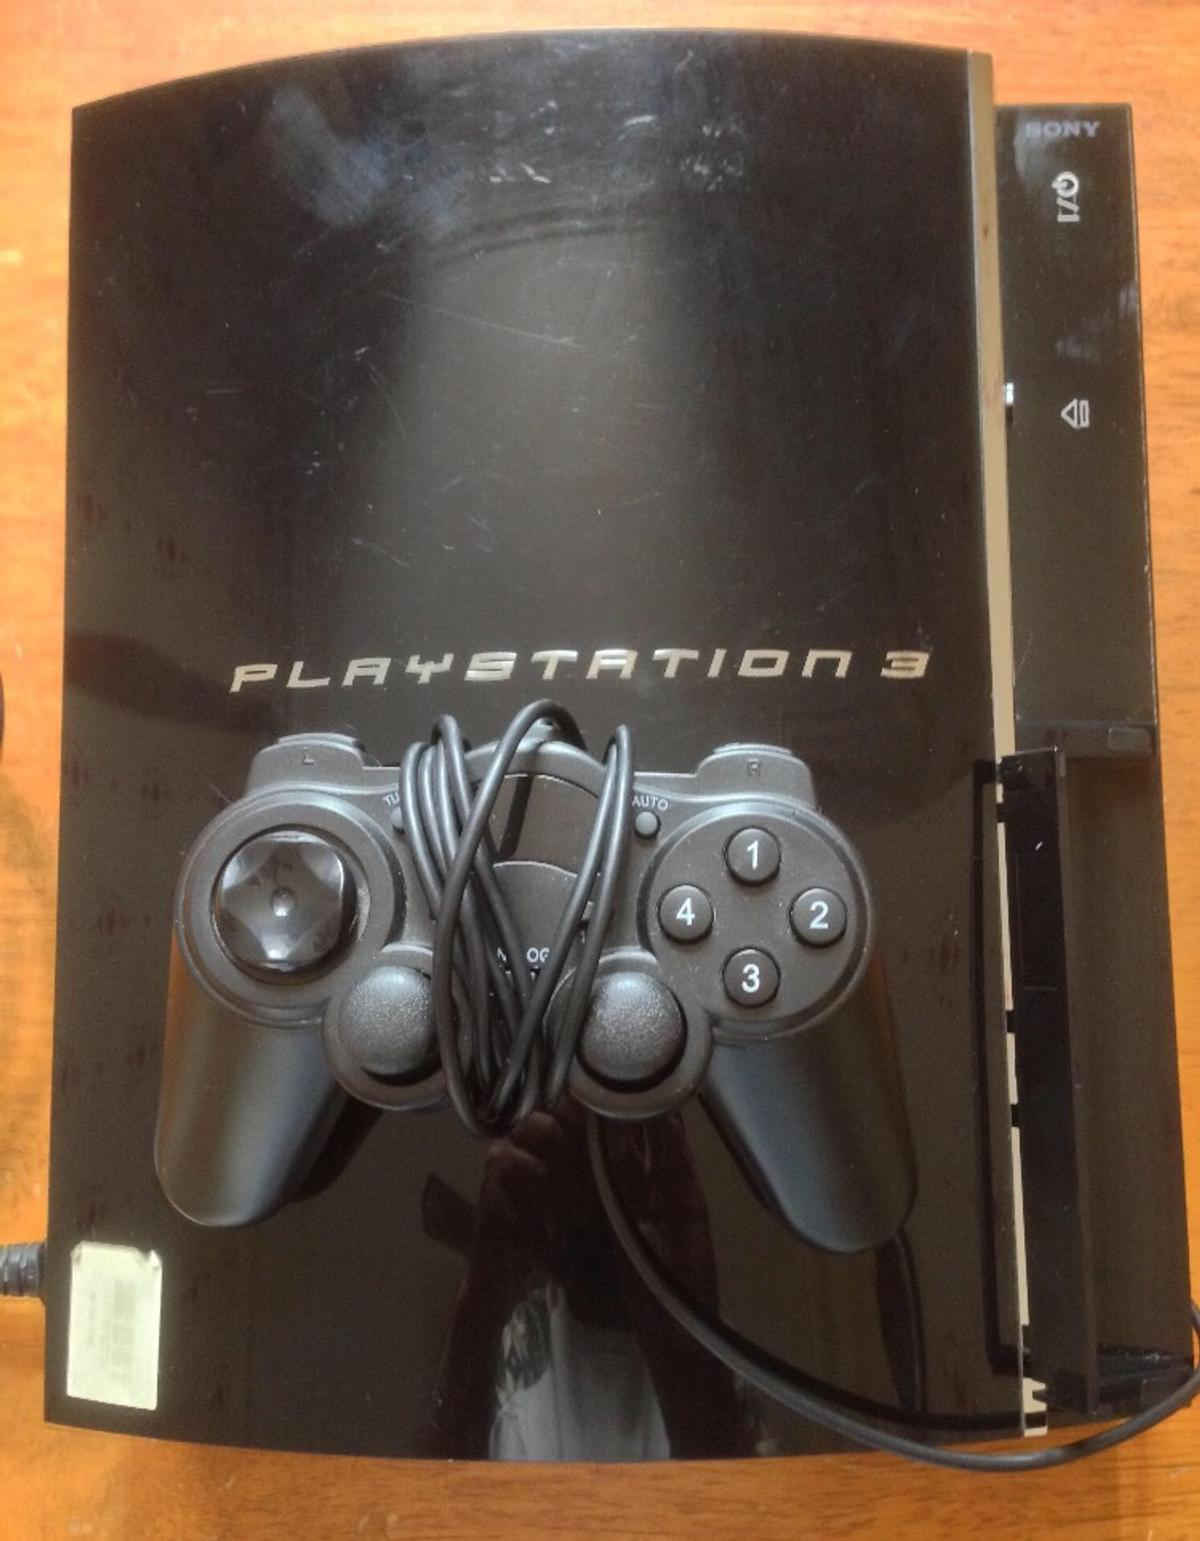 SONY PLAYSTATION PS3 PS2 60GB CONSOLE CECHC03 in WF17 Batley for